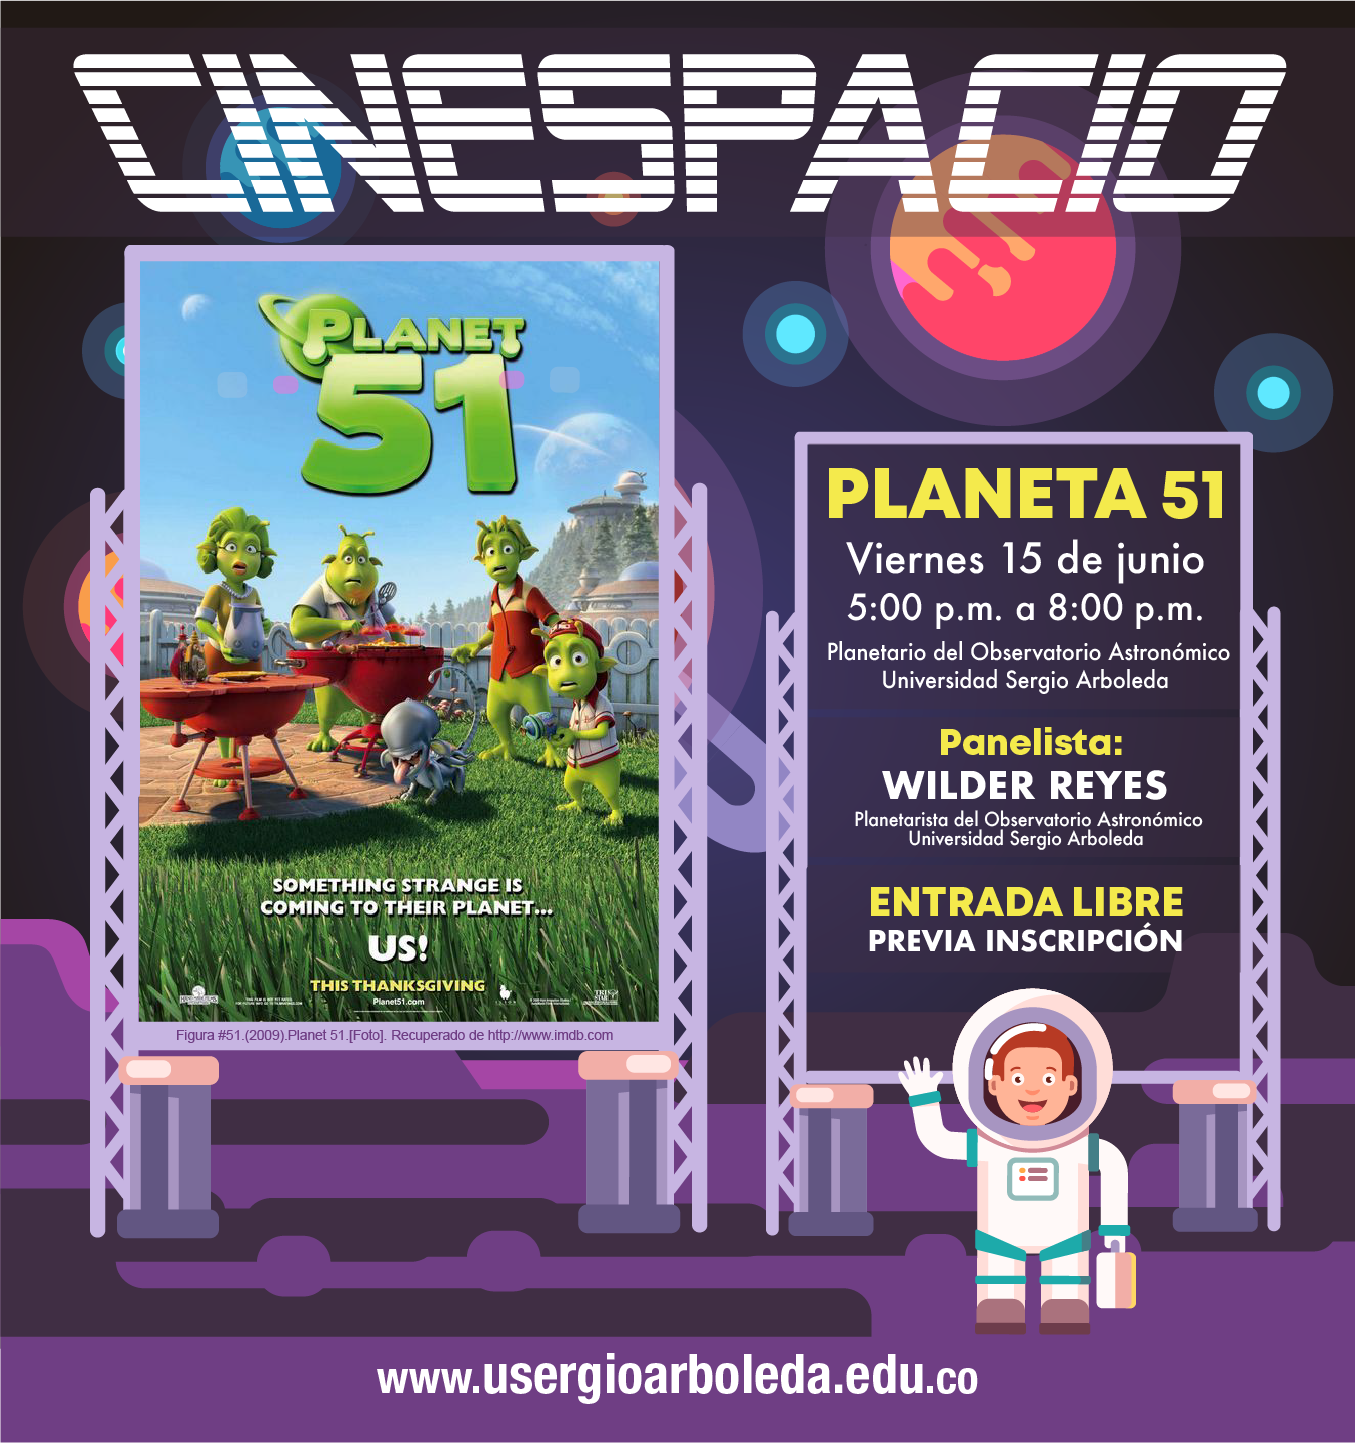 Planet_51_redes-02